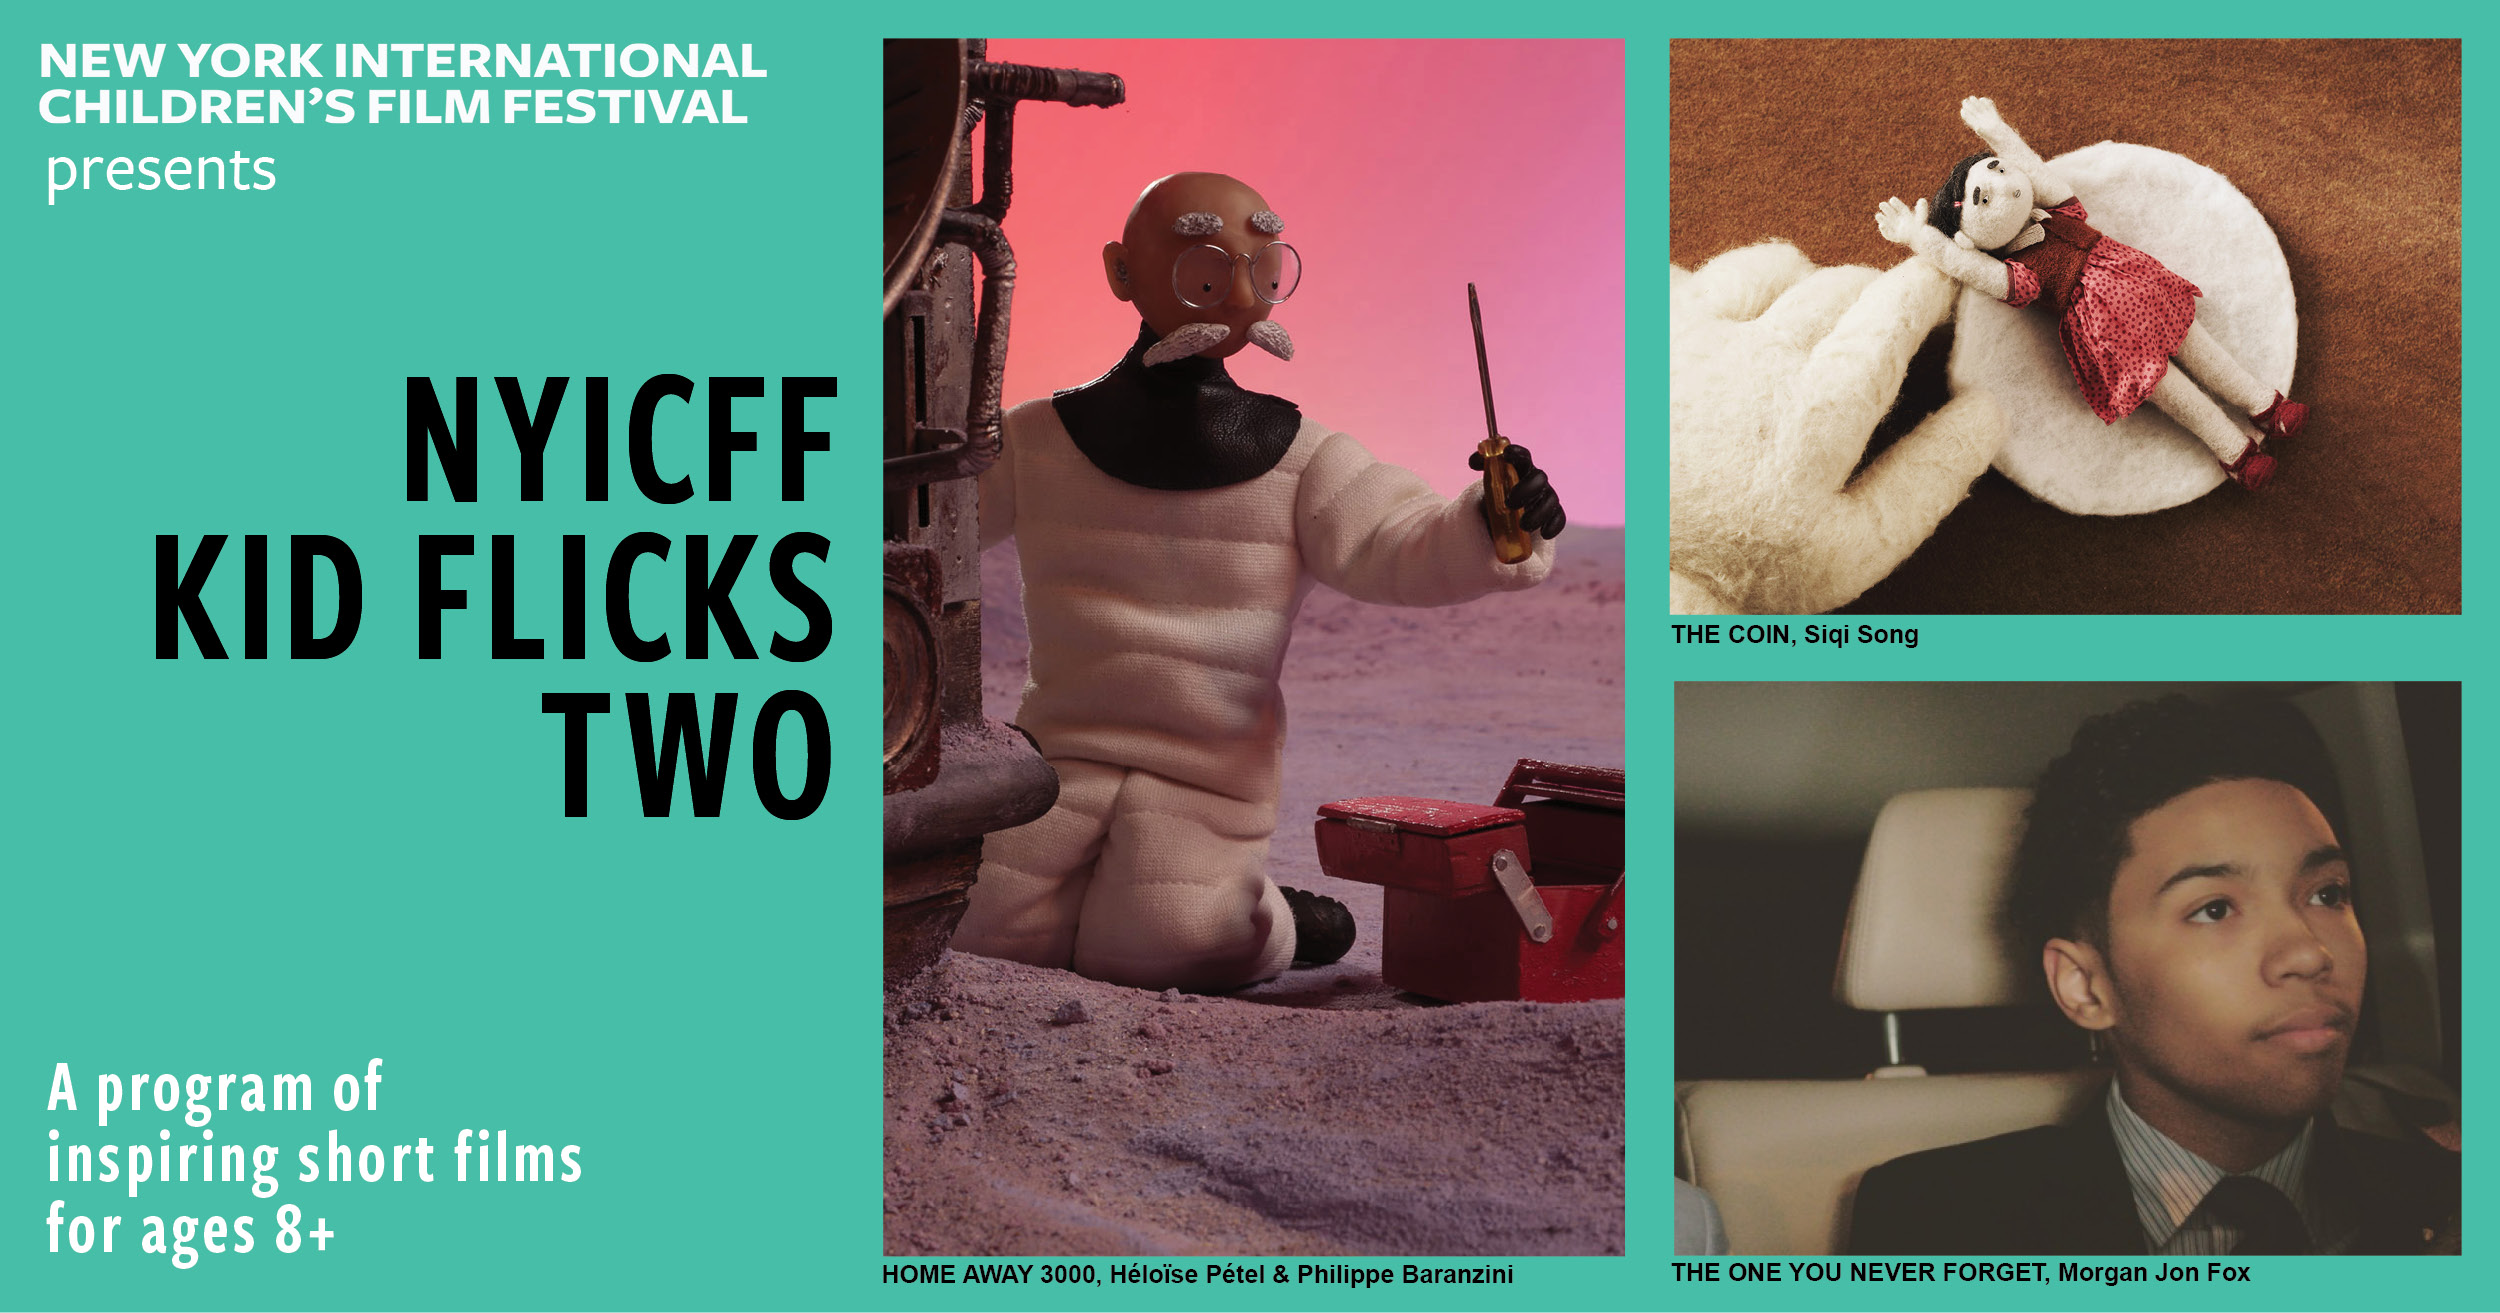 Poster for NYICFF Kid Flicks Two 2020 (Target age 8+)